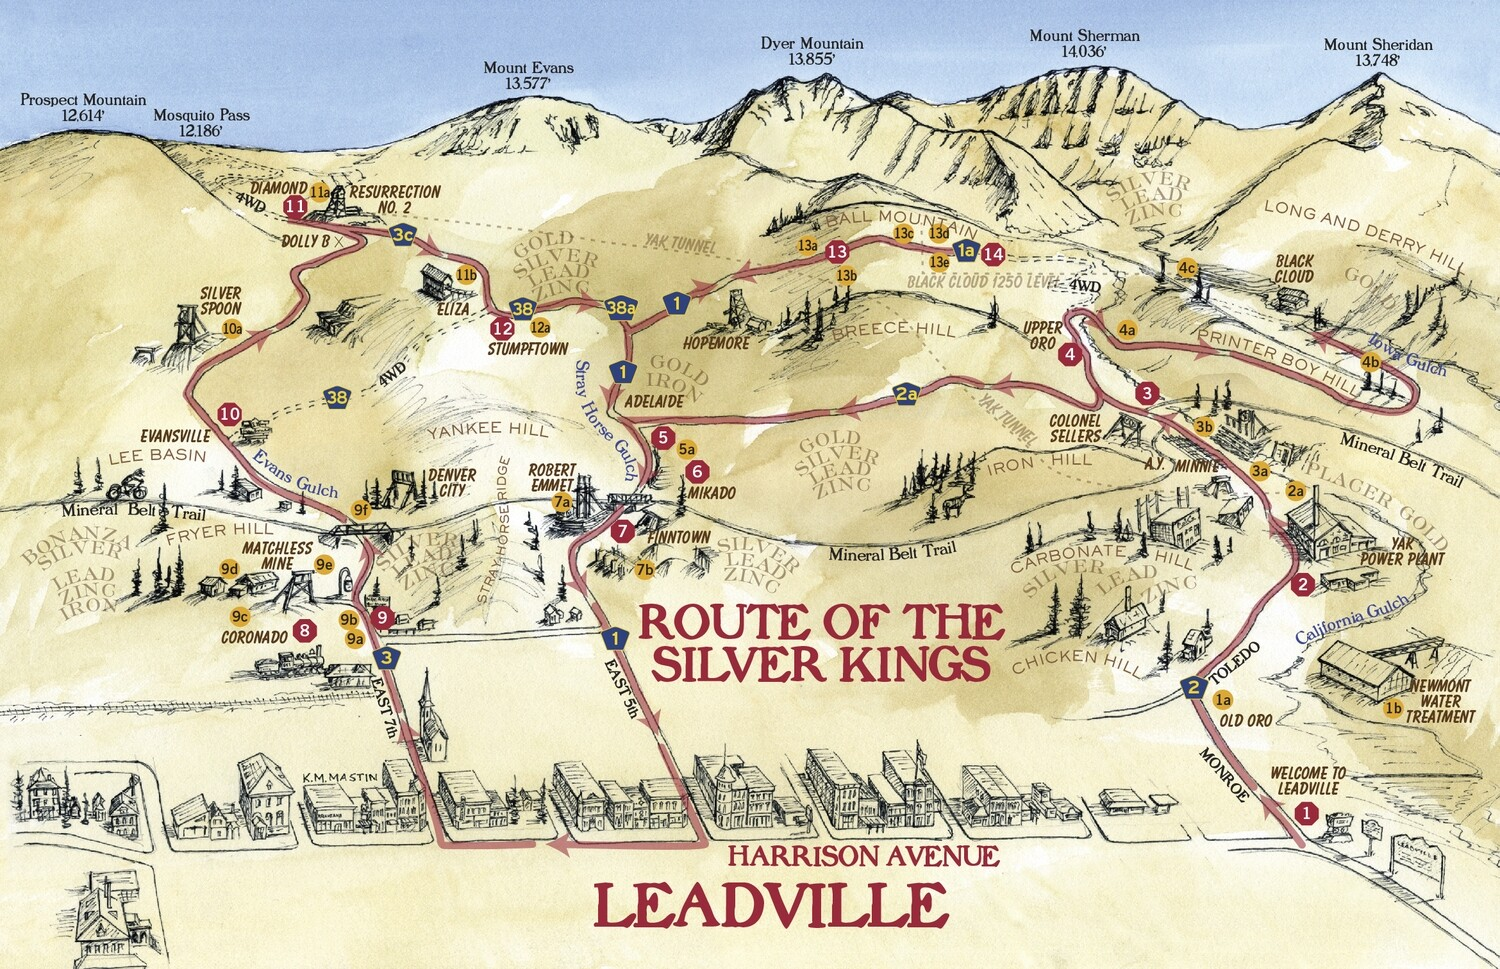 Leadville Route of the Silver Kings Map